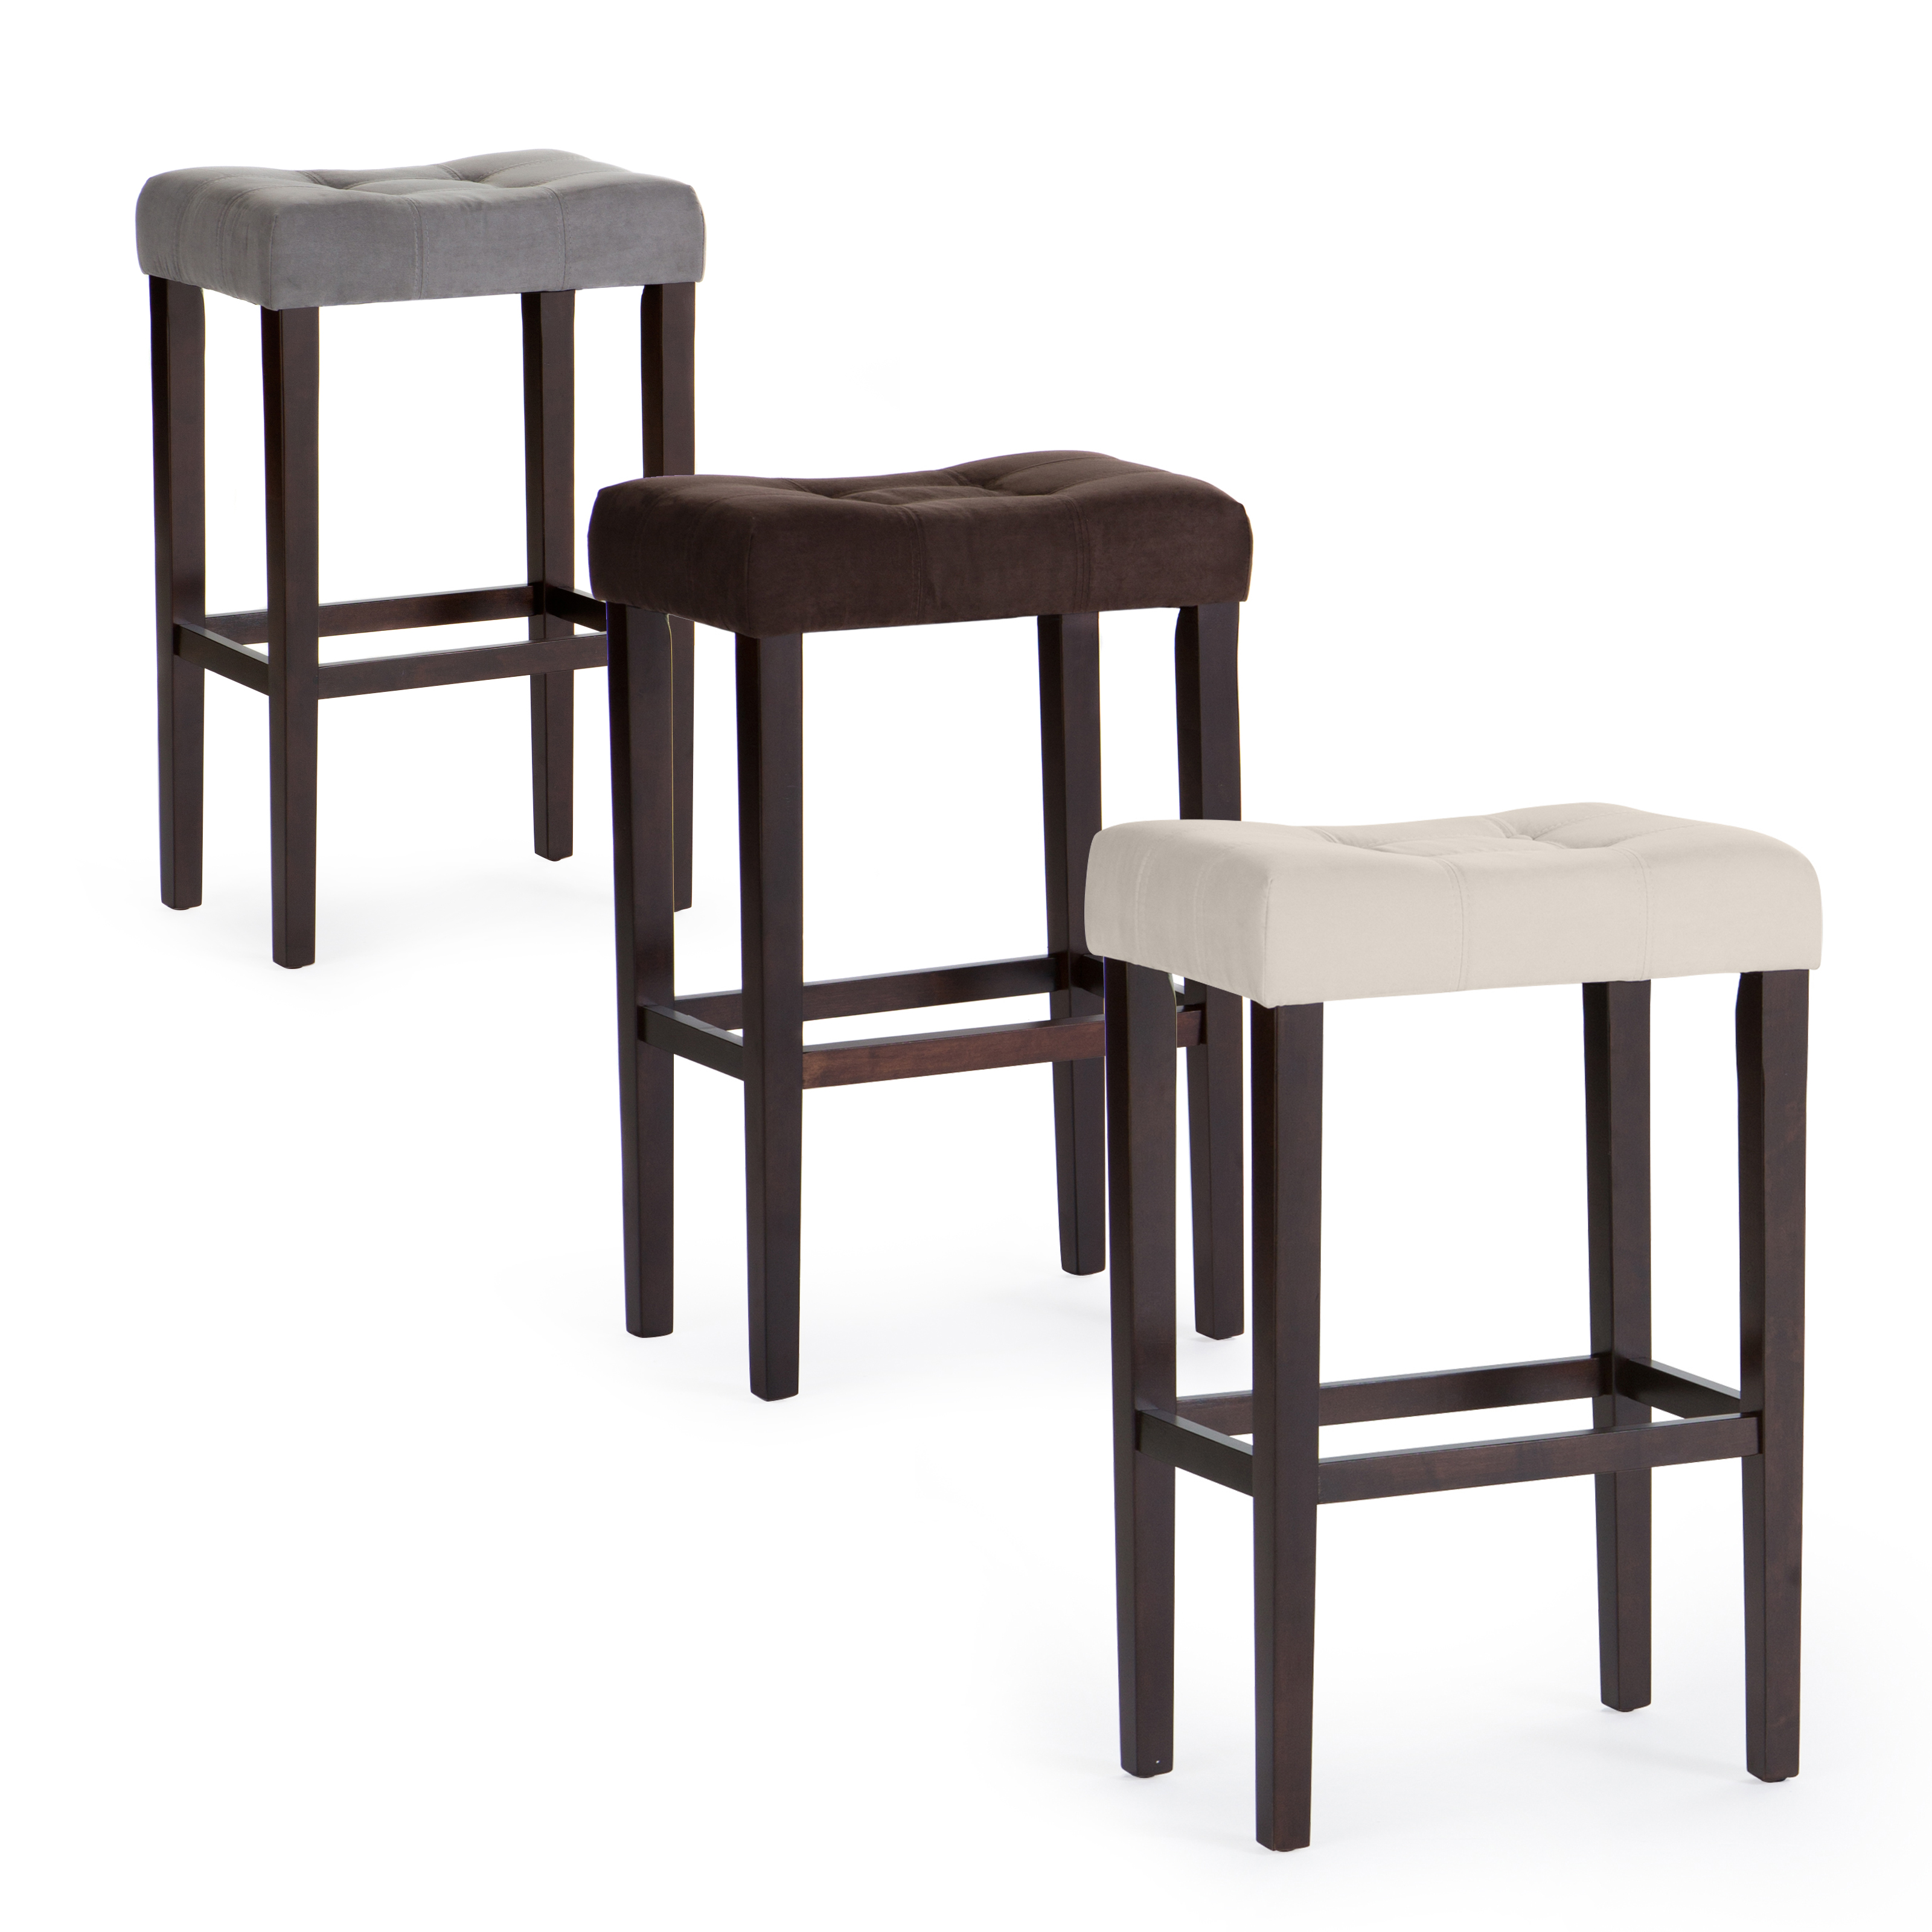 Palazzo 32 Inch Extra Tall Saddle Stool Bar Stools At